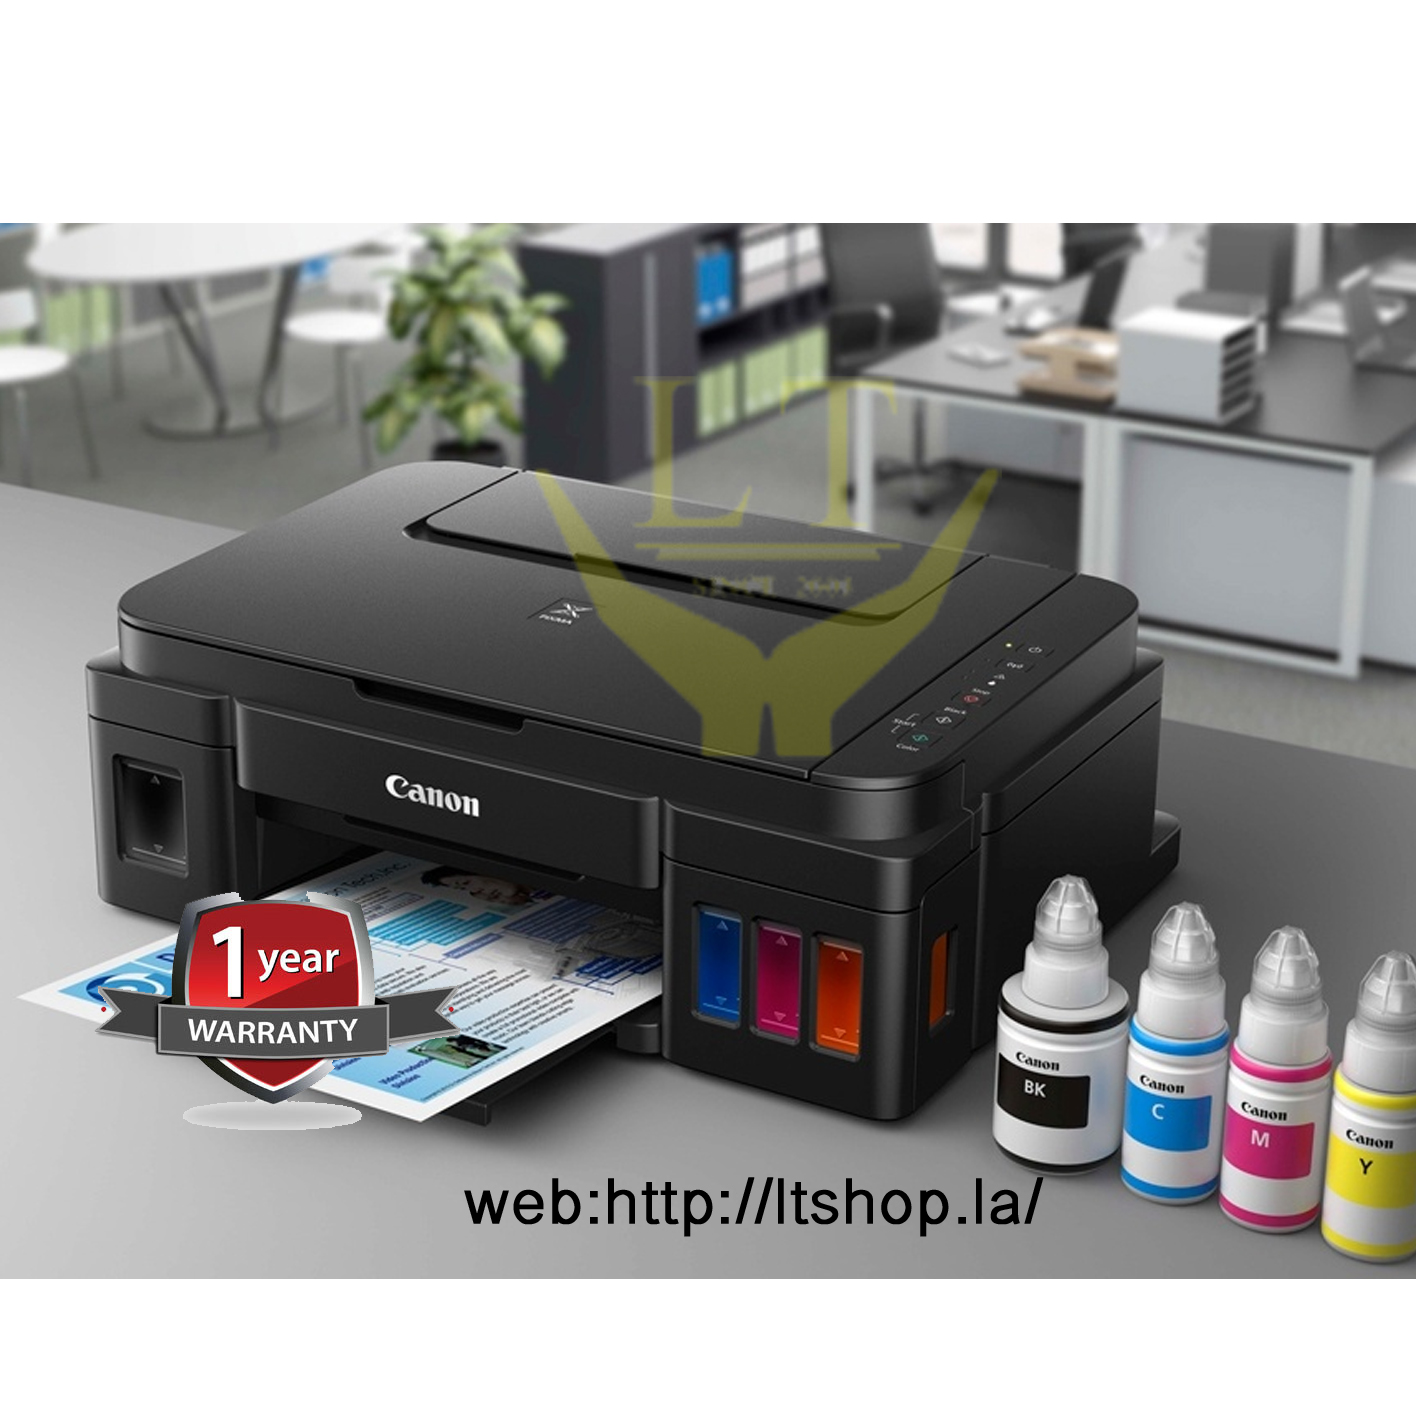 Canon G3000 All In One Wi Fi Printer